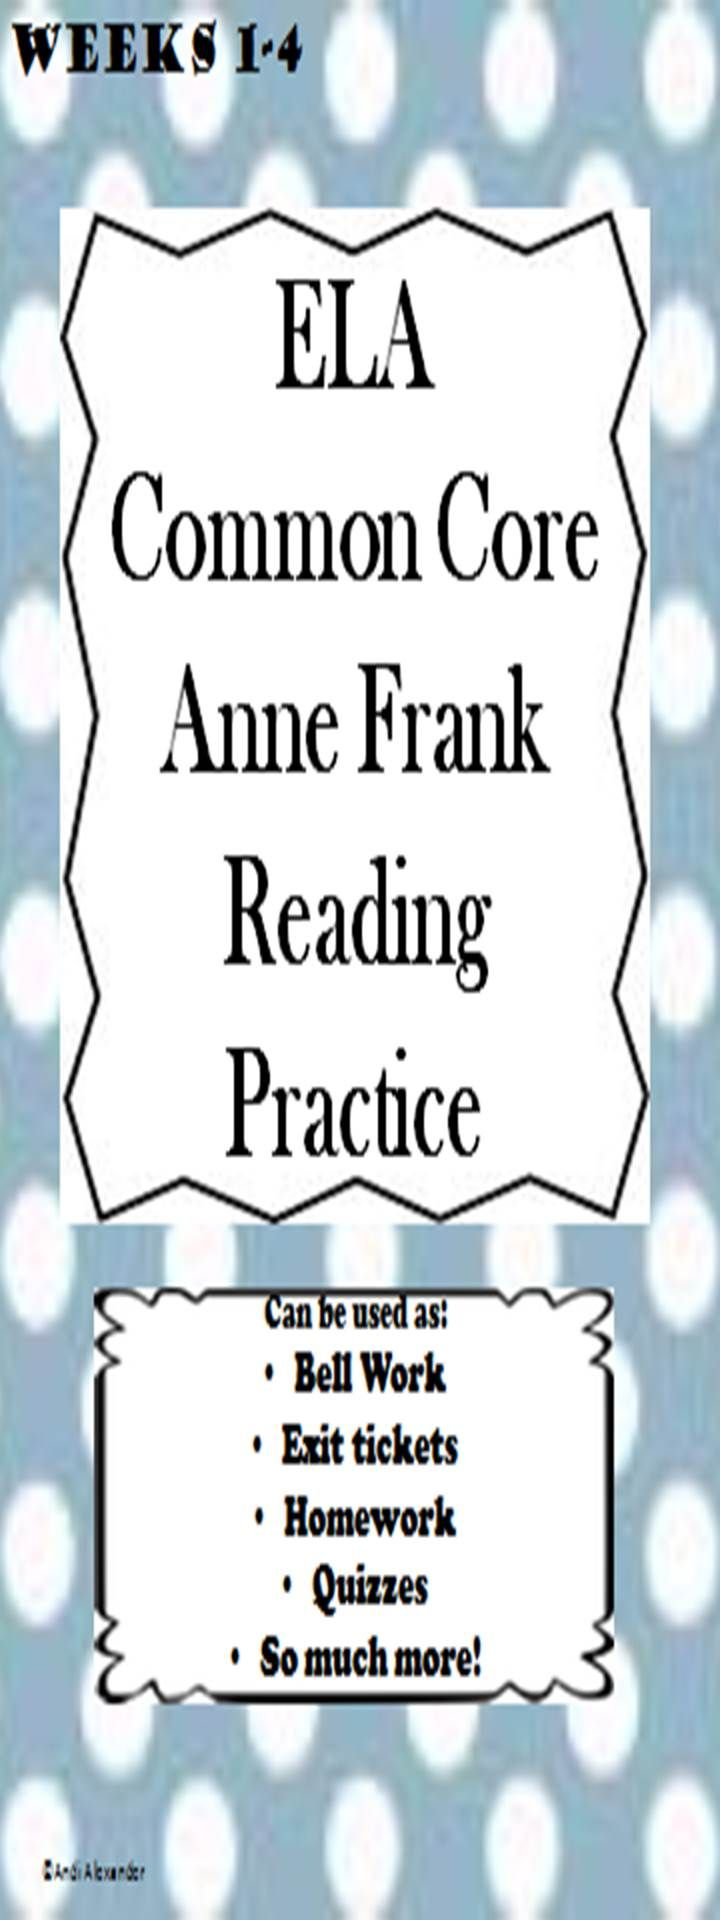 ontisuka tiger mexico 66 Anne Frank Daily Common Core Reading Practice  This includes 4 weeks of Reading Practice that can be used for bell work  homework  daily practice  quizzes  and more